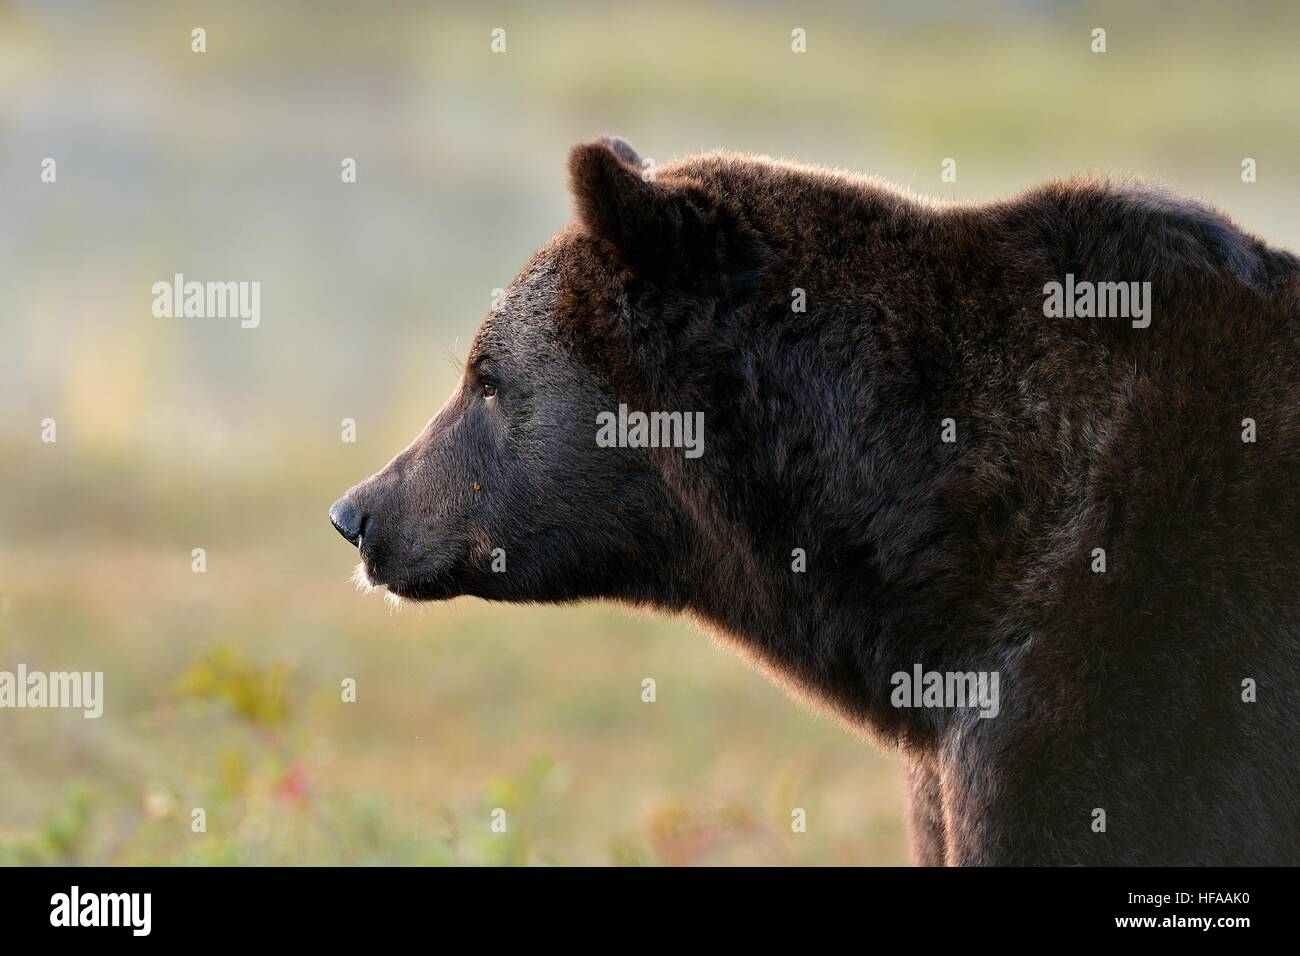 brown bear side view close up stock photos brown bear side view close up stock images alamy. Black Bedroom Furniture Sets. Home Design Ideas